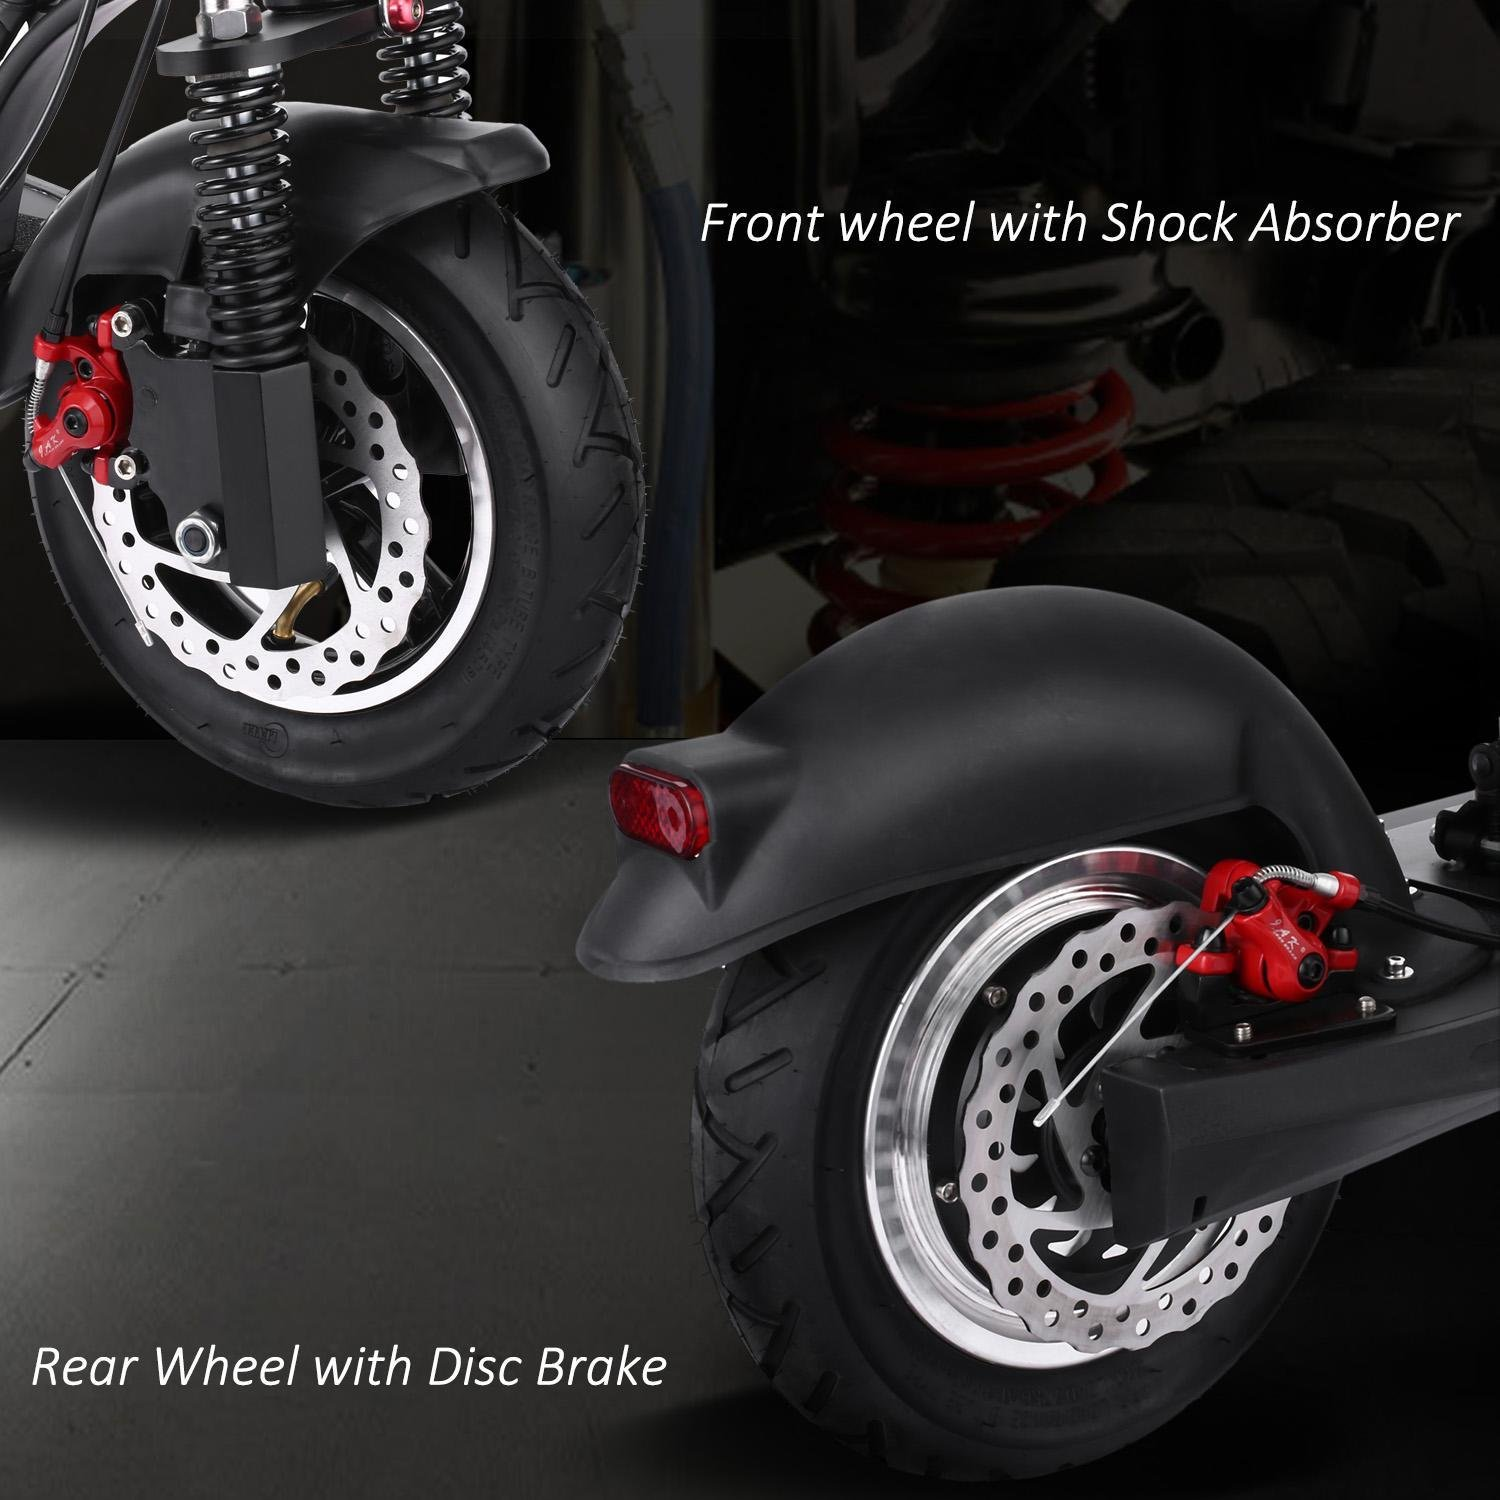 cooshional Patinete Scooter Eléctrica Plagable con Asiento ...